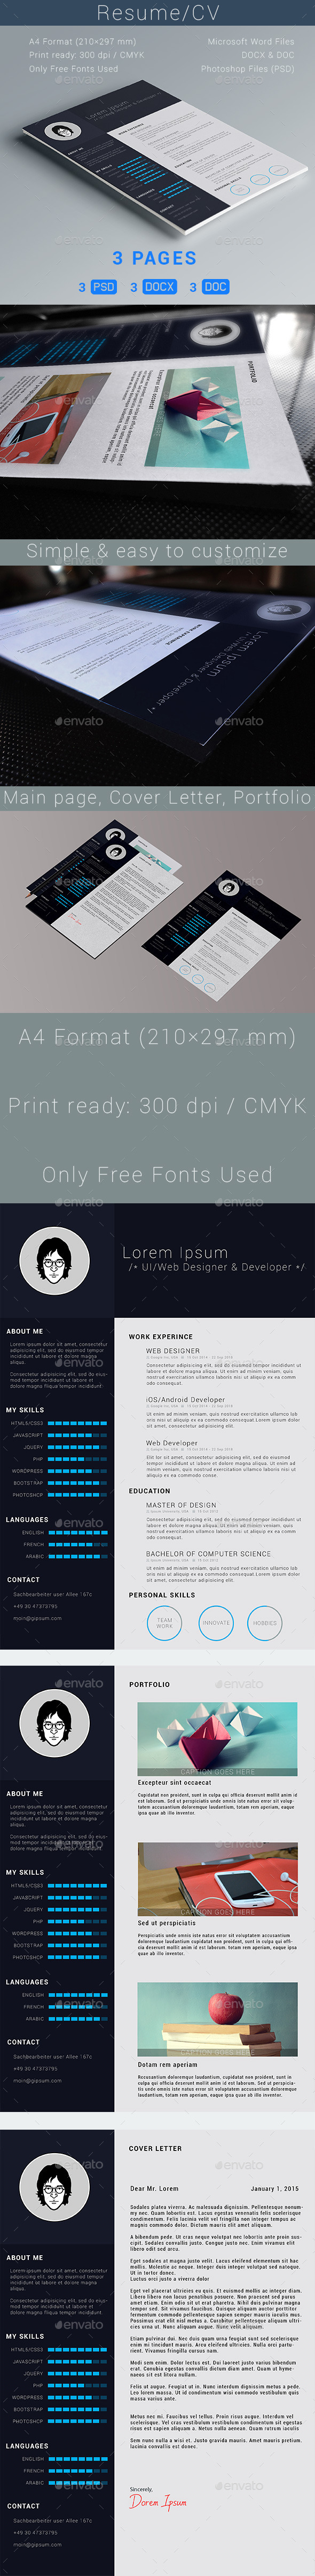 GraphicRiver Resume CV 9979860